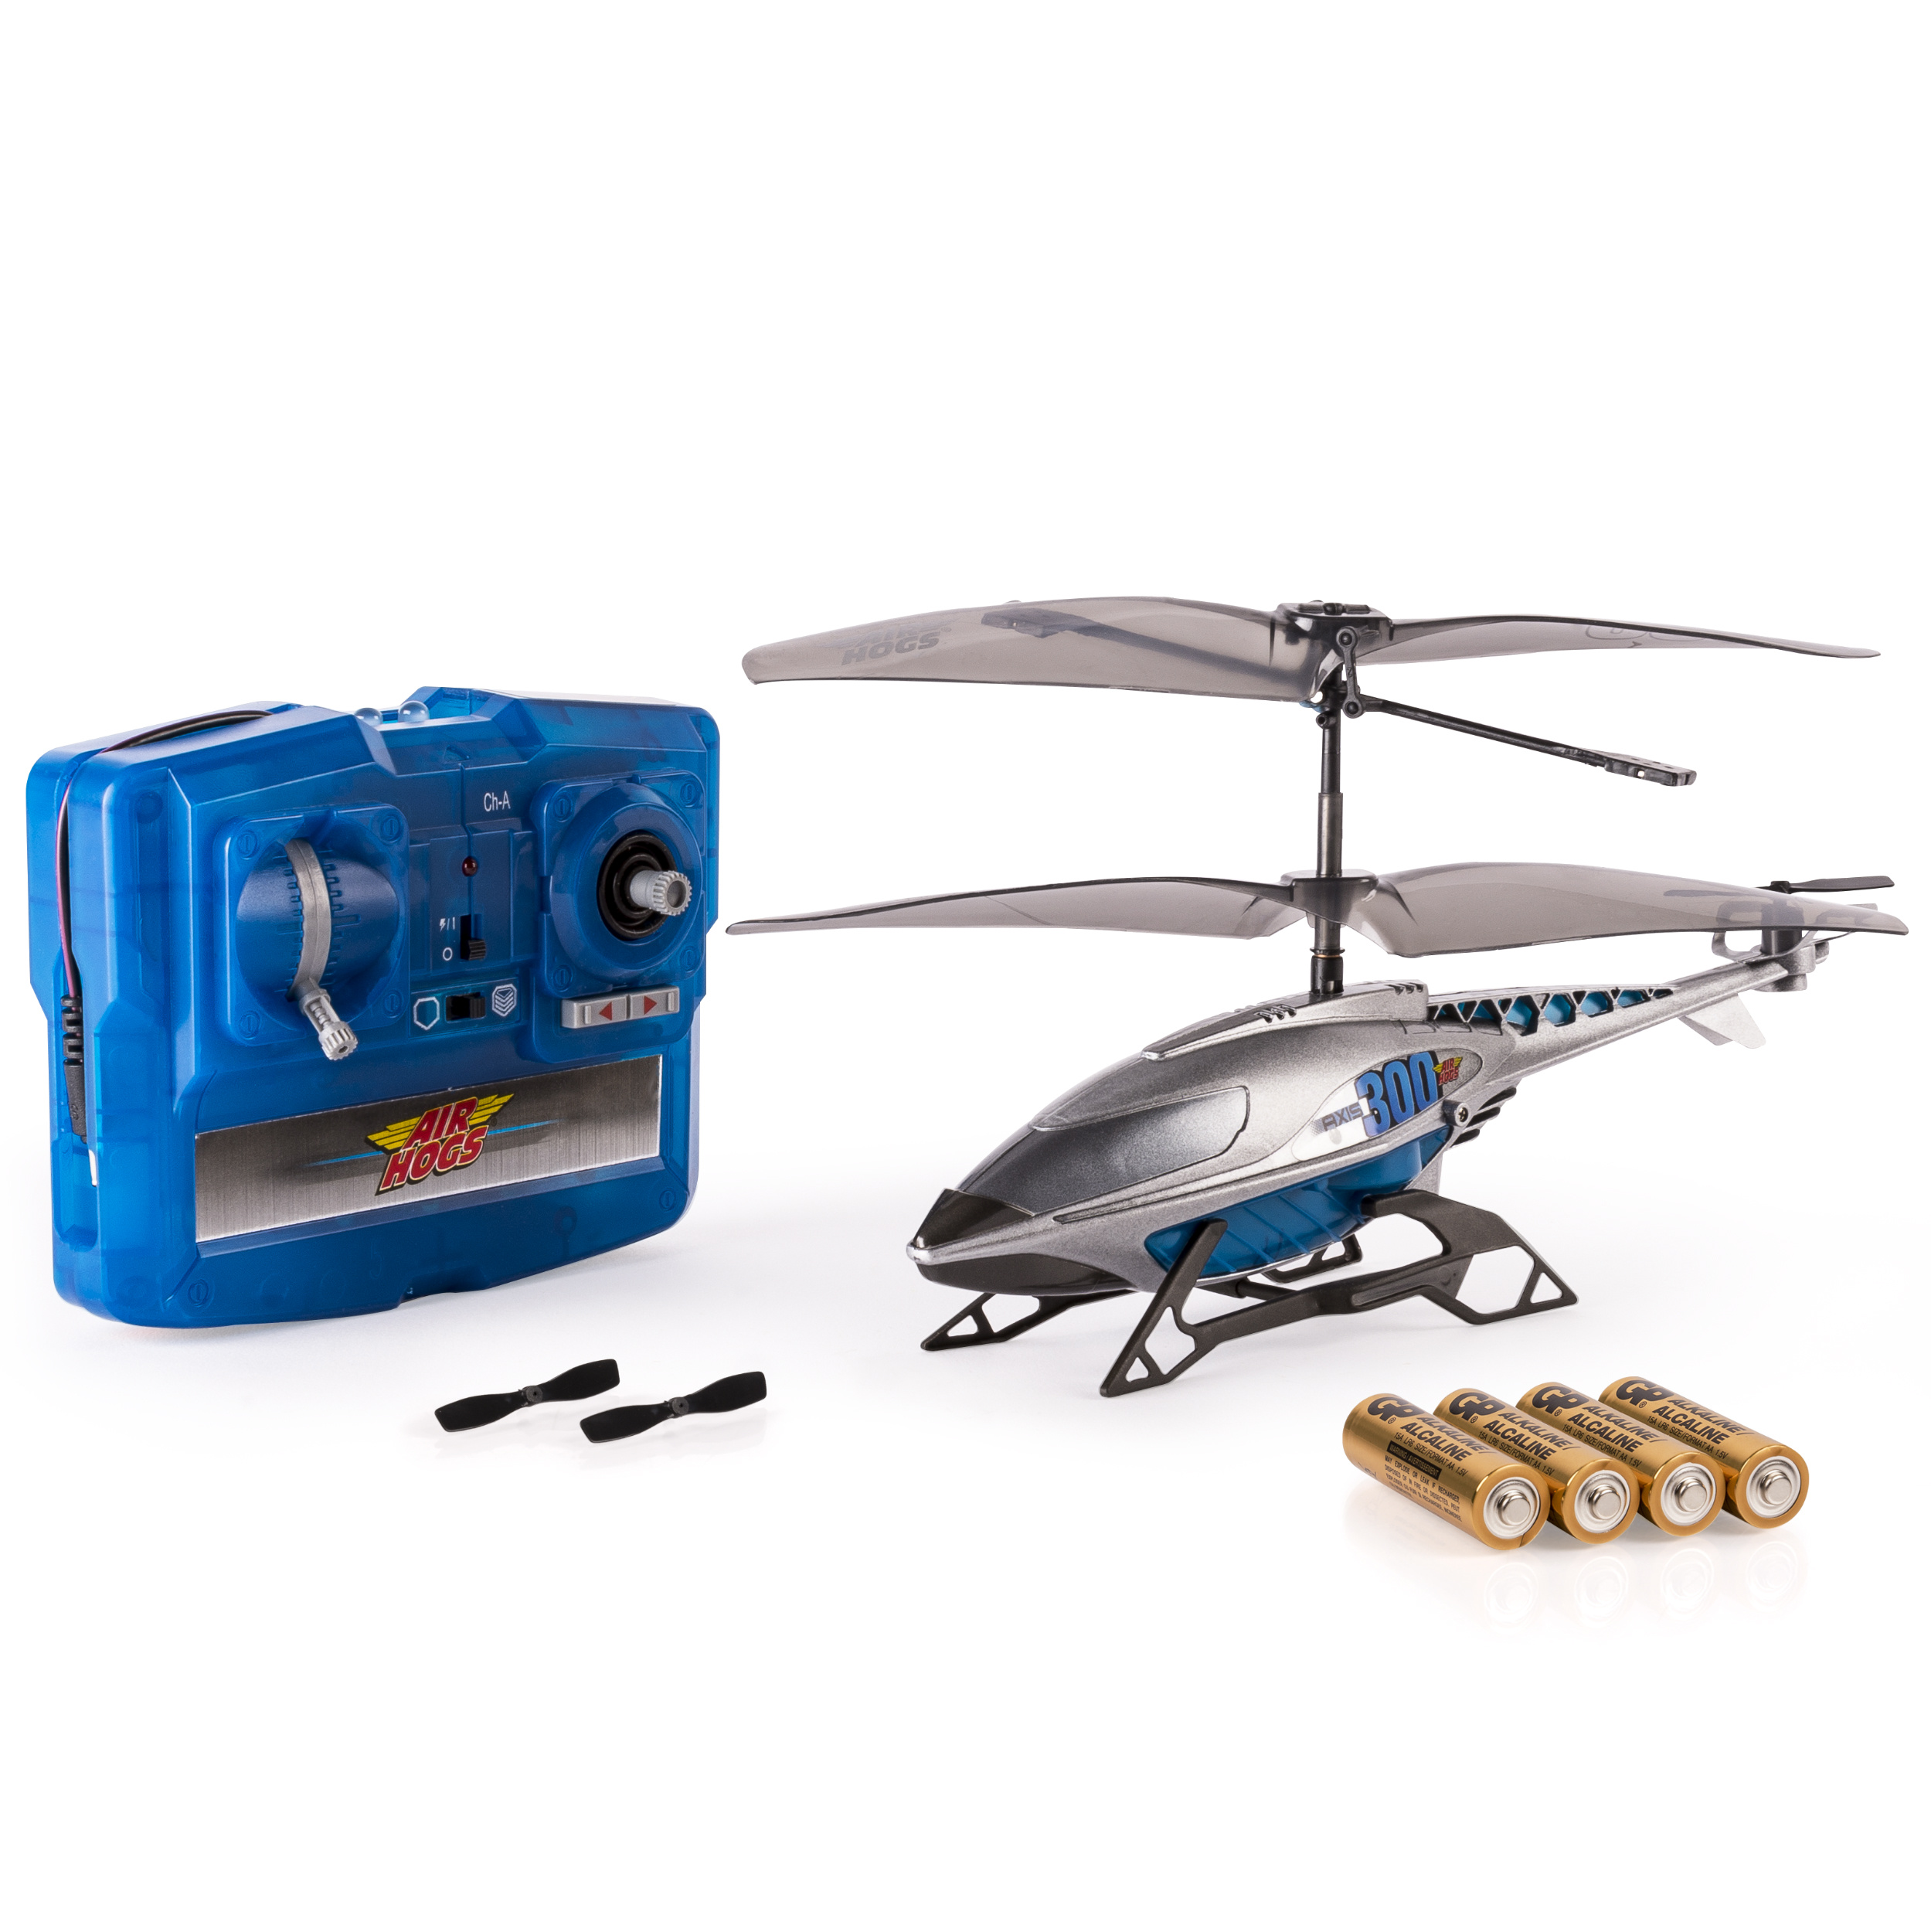 Air Hogs Axis 300x RC Helicopter With Batteries - Silver & Blue PartNumber: 004W008066272005P KsnValue: 004W008066272005 MfgPartNumber: 6023359